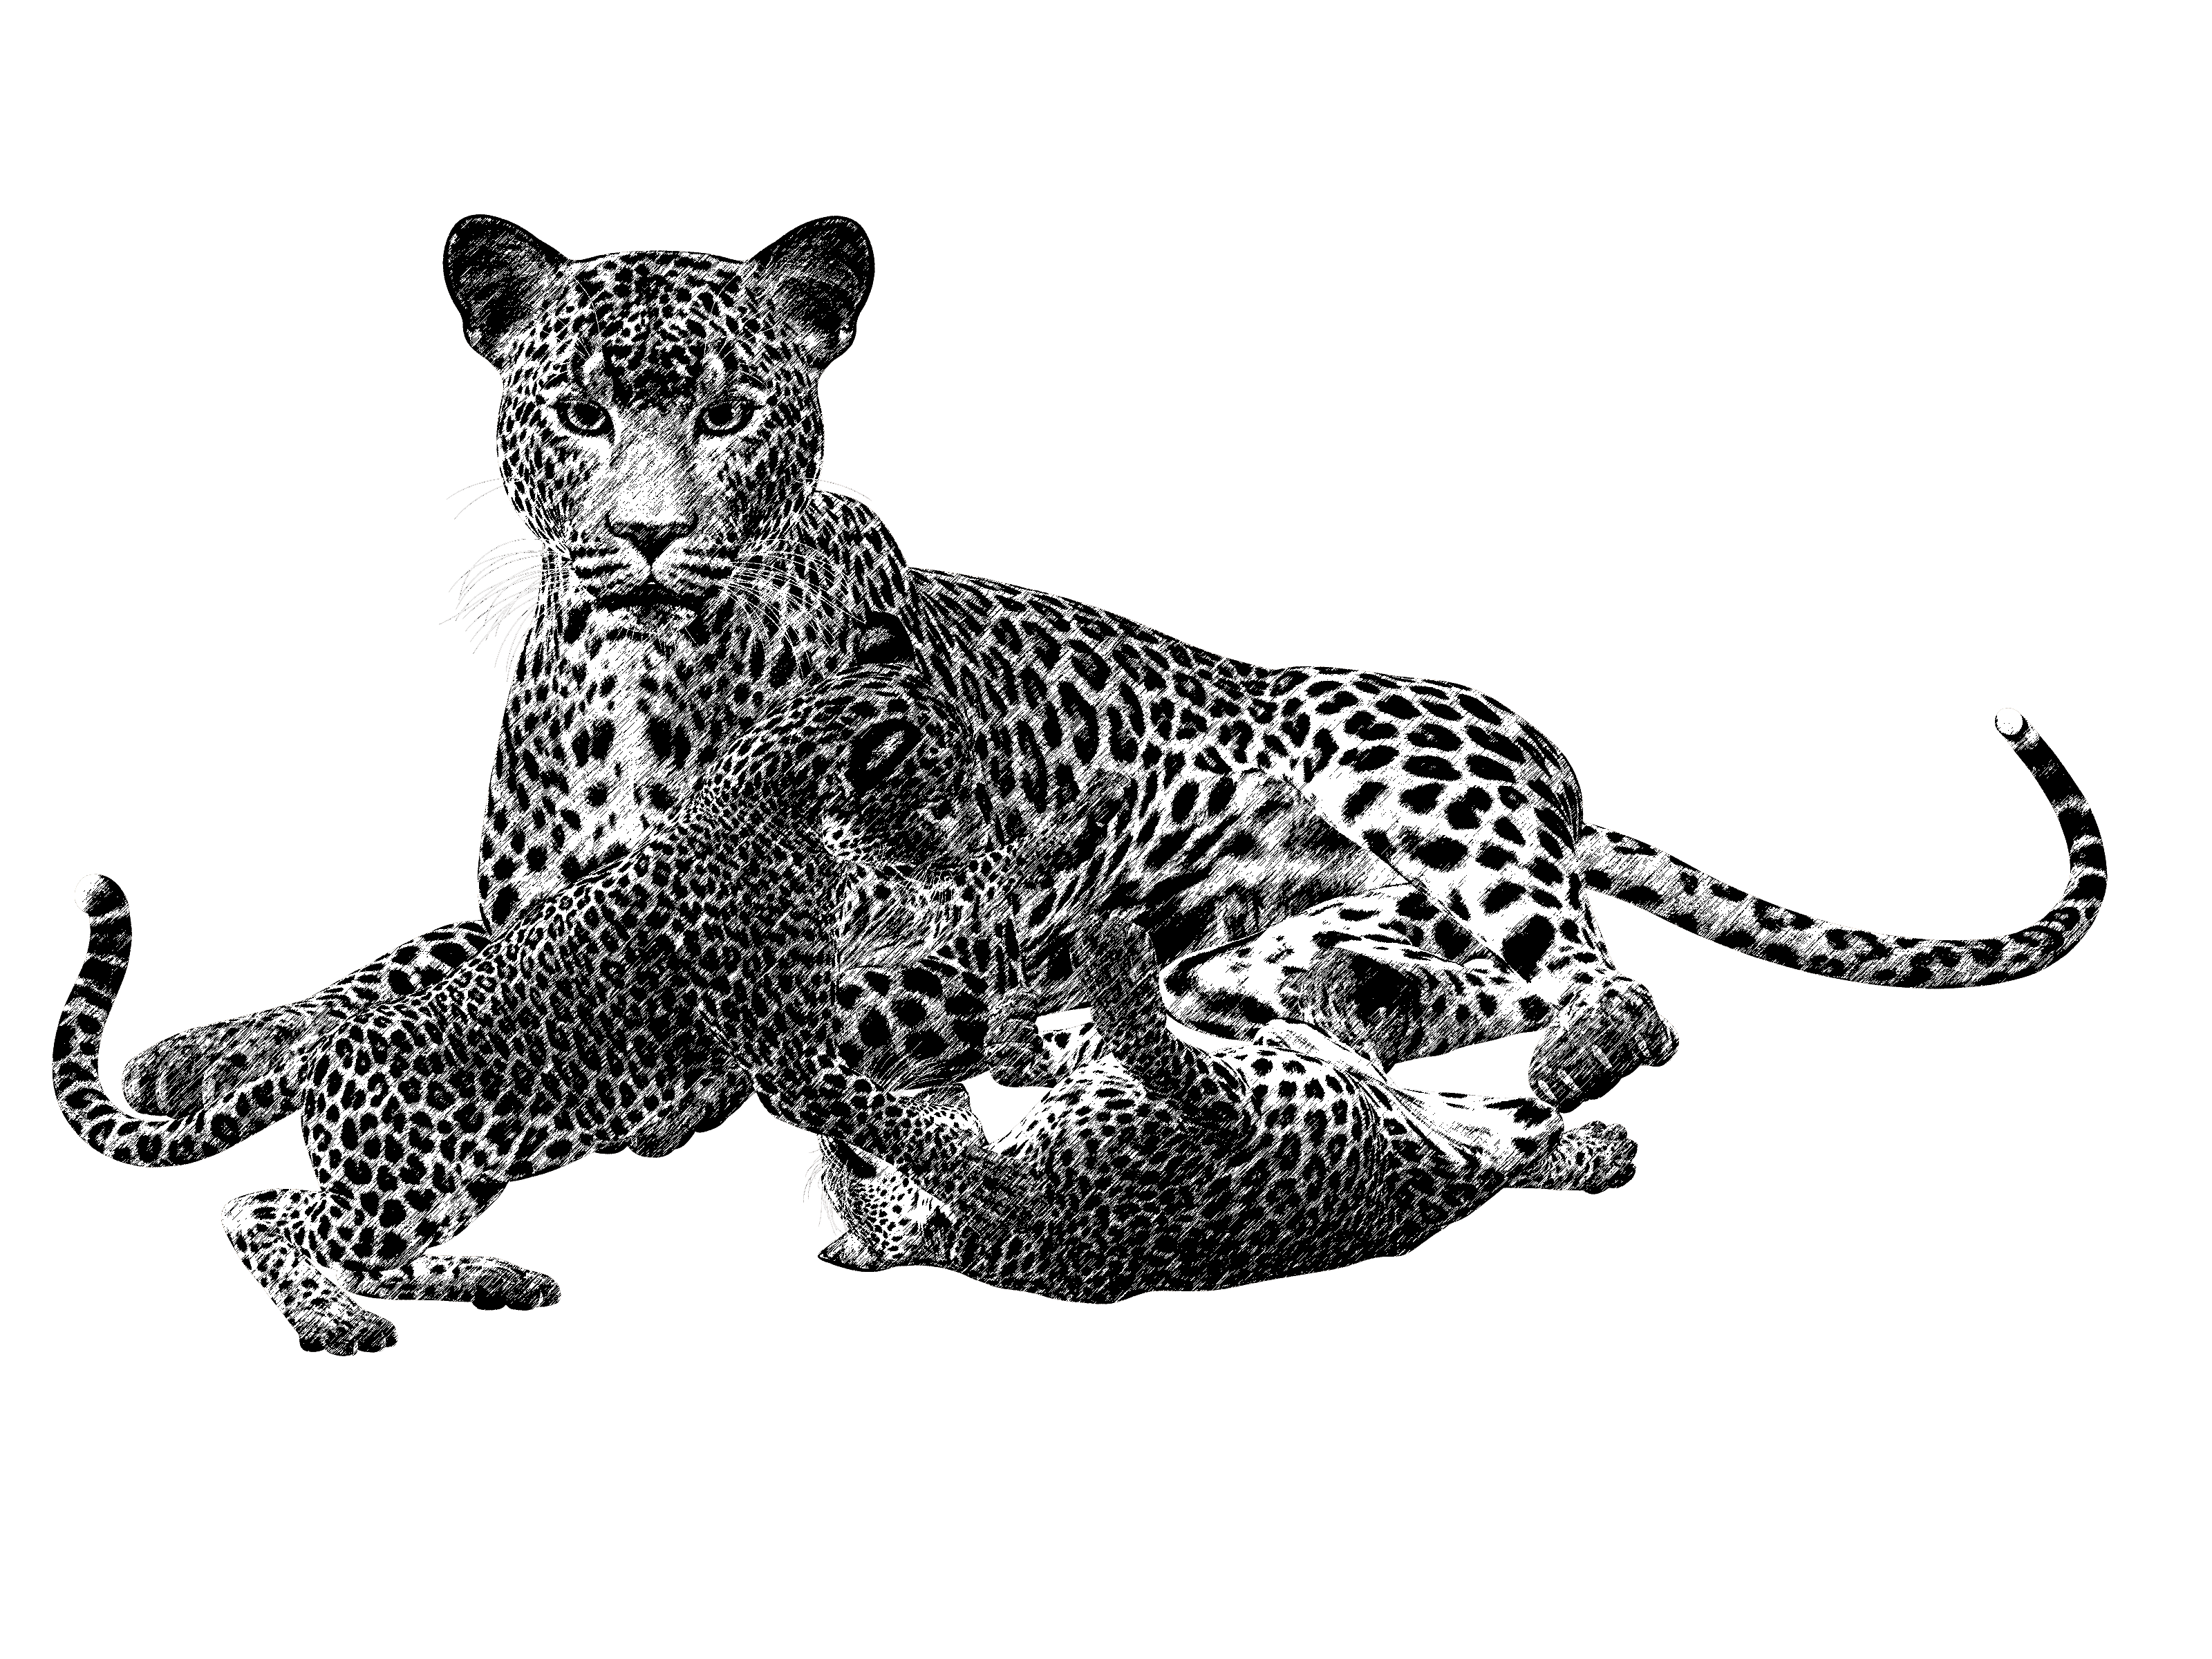 drawing cheetah zentangle